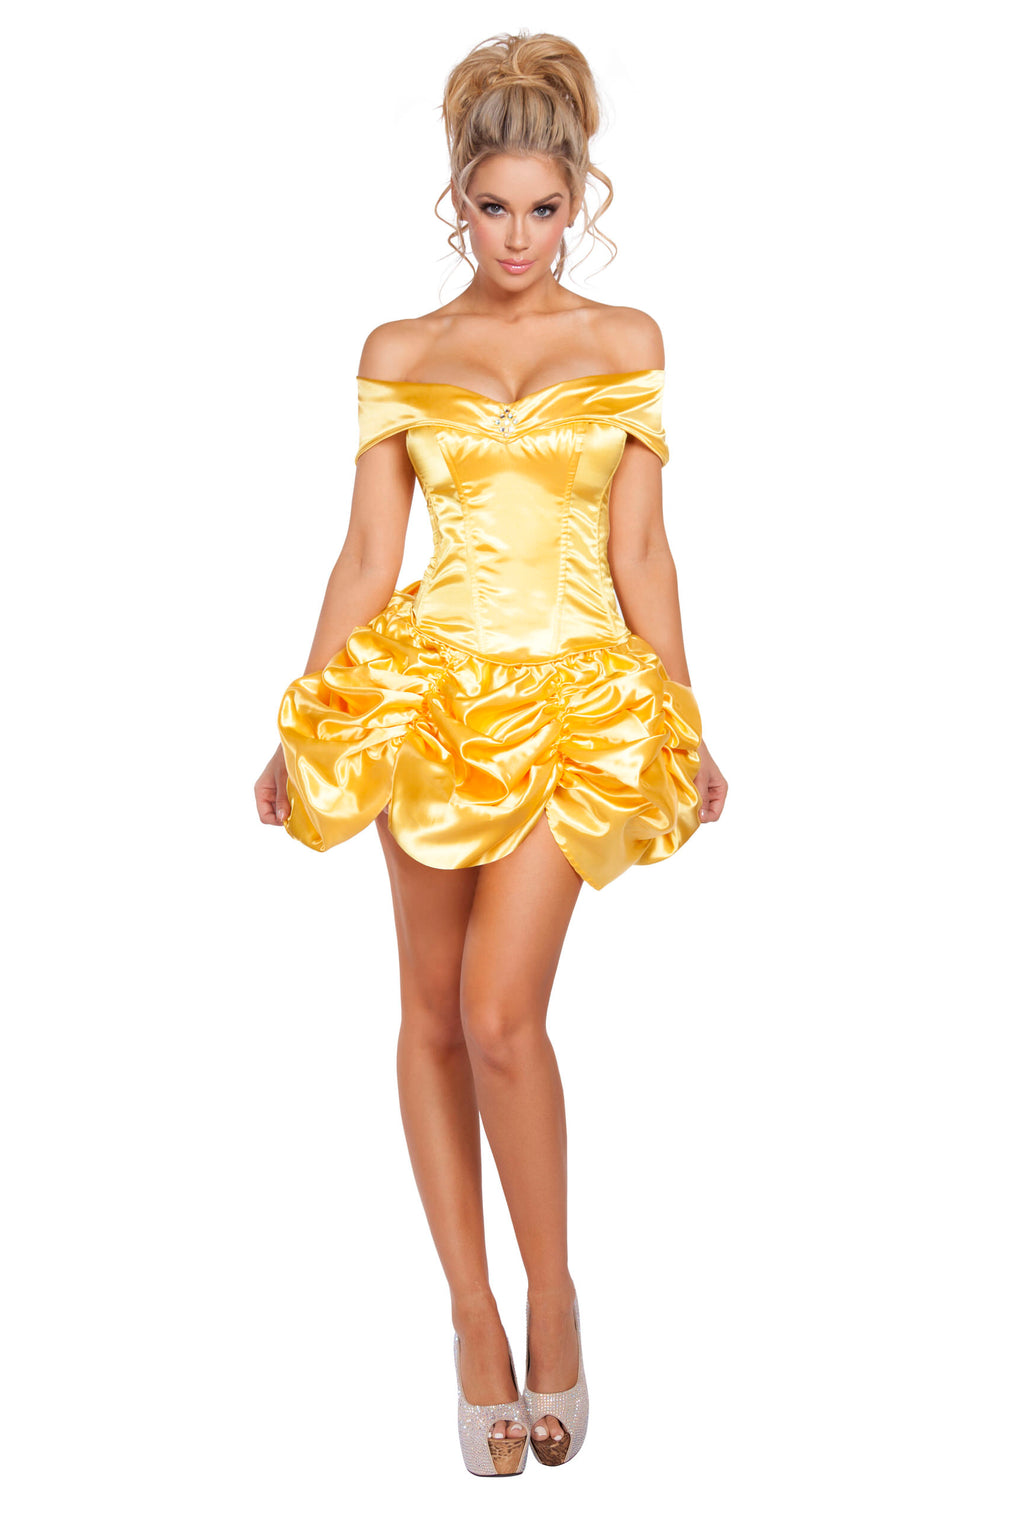 2-Piece-Sexy-Beauty-&-the-Beast-Princess-Belle-Top-&-Skirt-Costume